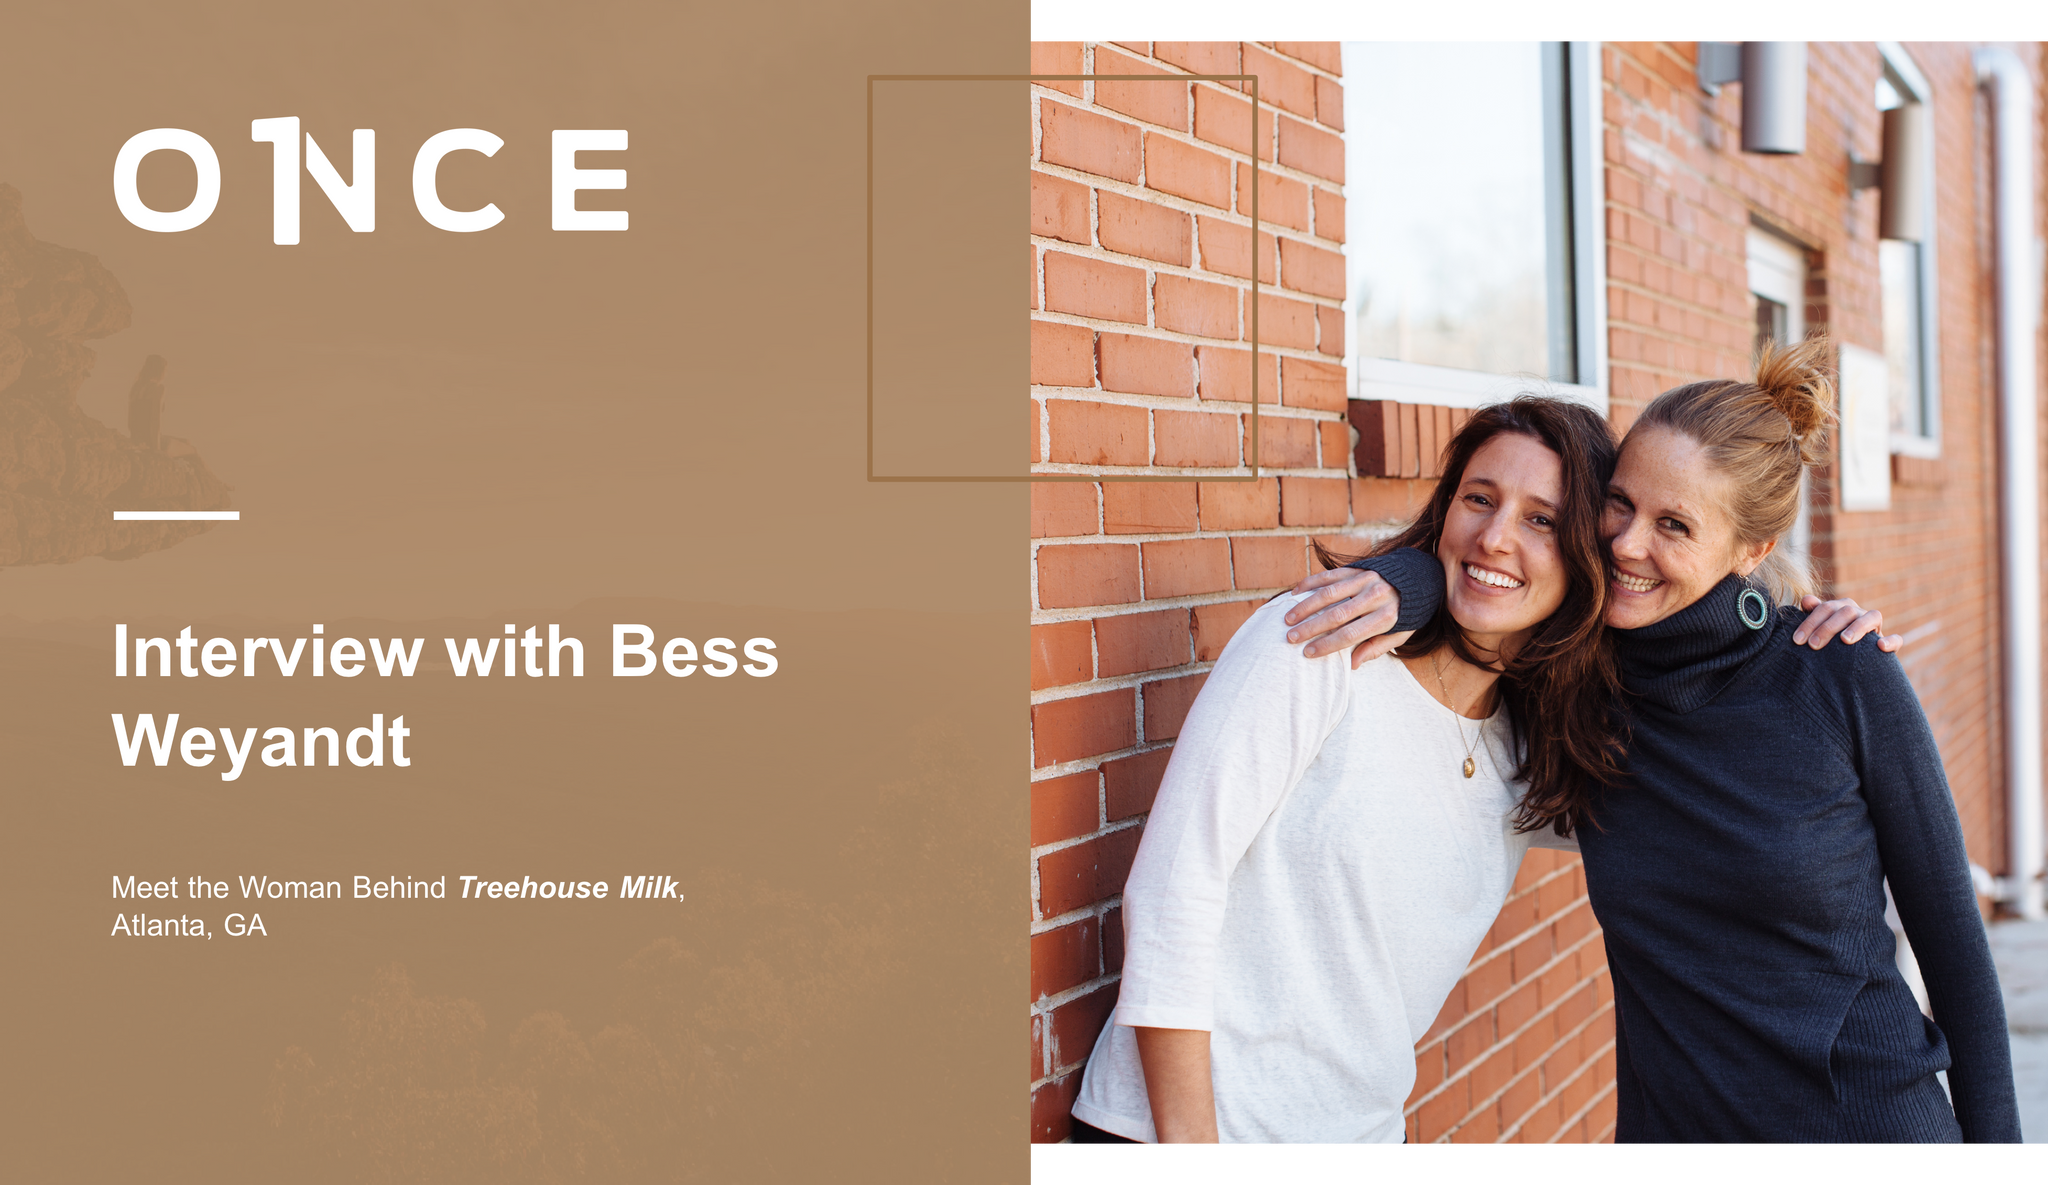 Image introducing interview with Bess of Treehouse Milk